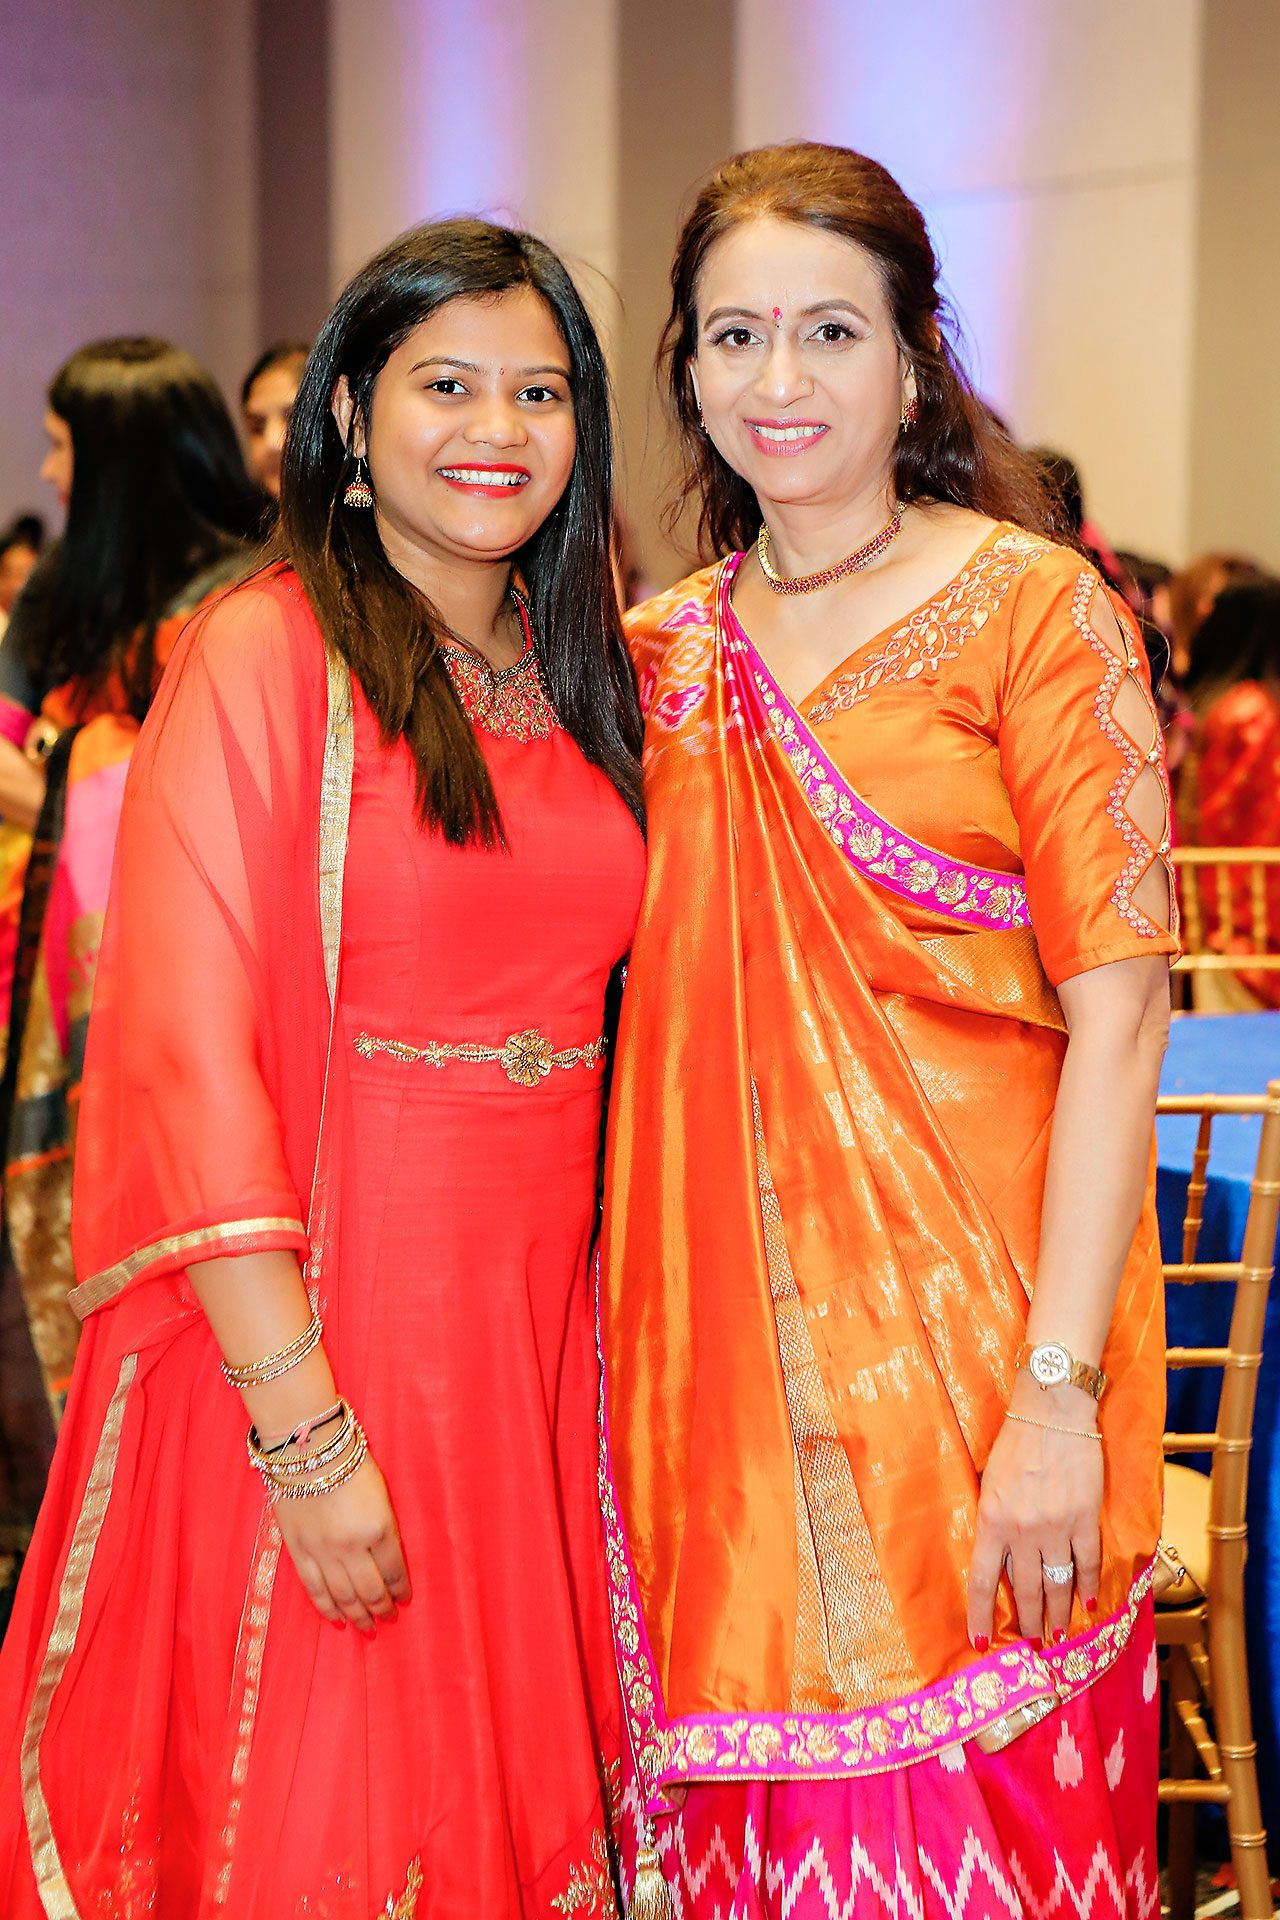 Neil Ganesh Pooja Embassy Suites Conference Center Noblesville 179